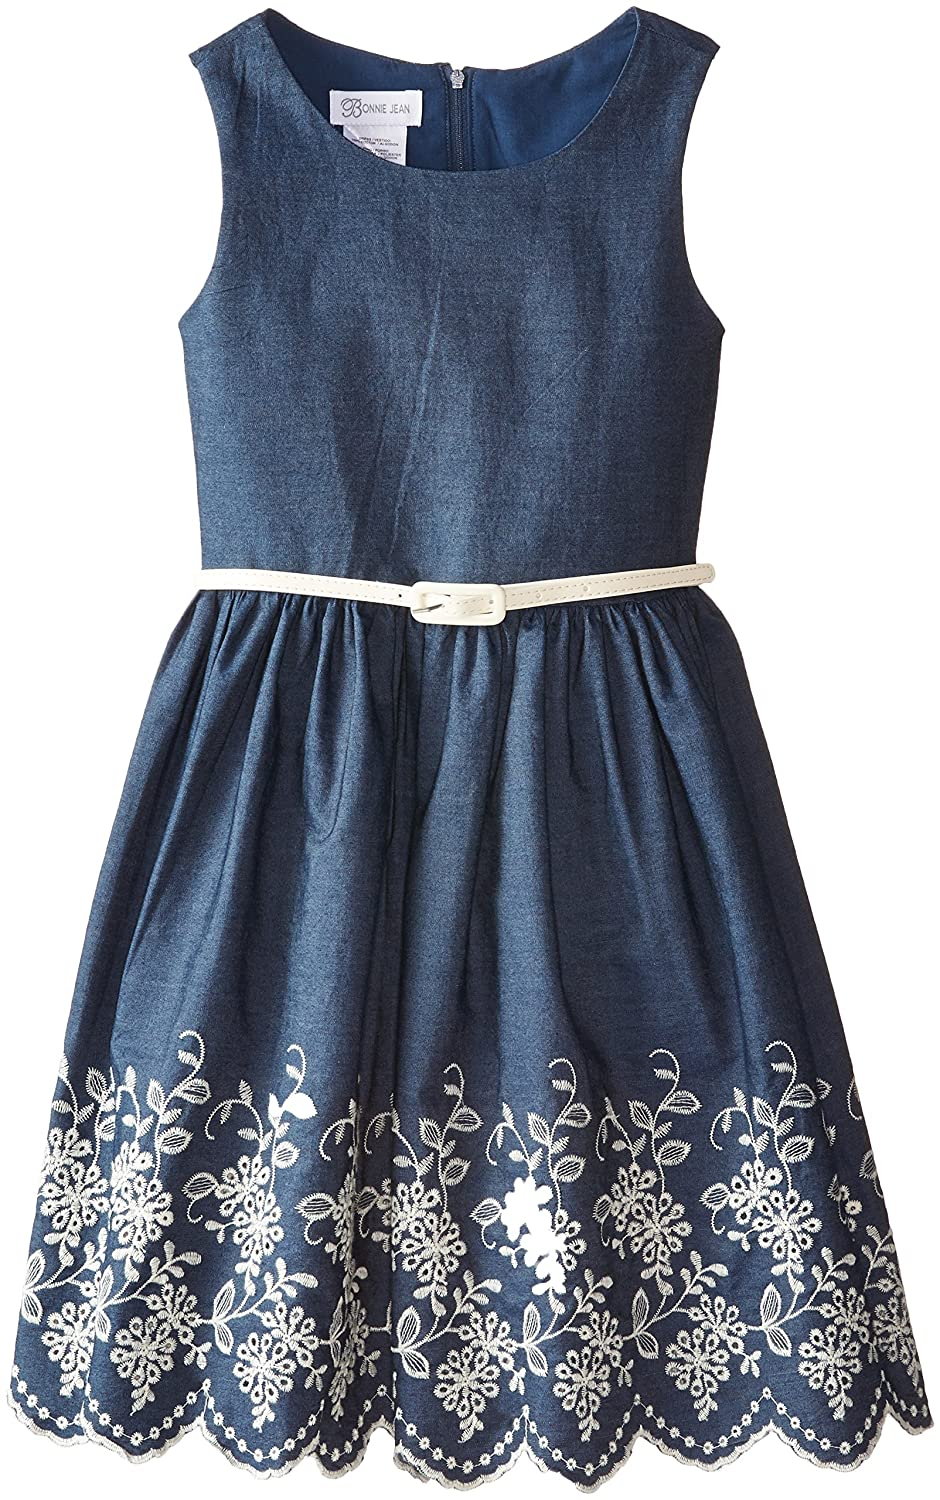 bf17697d76d Top1: Bonnie Jean Big Girls' Chambray Dress with Embroidered Hem